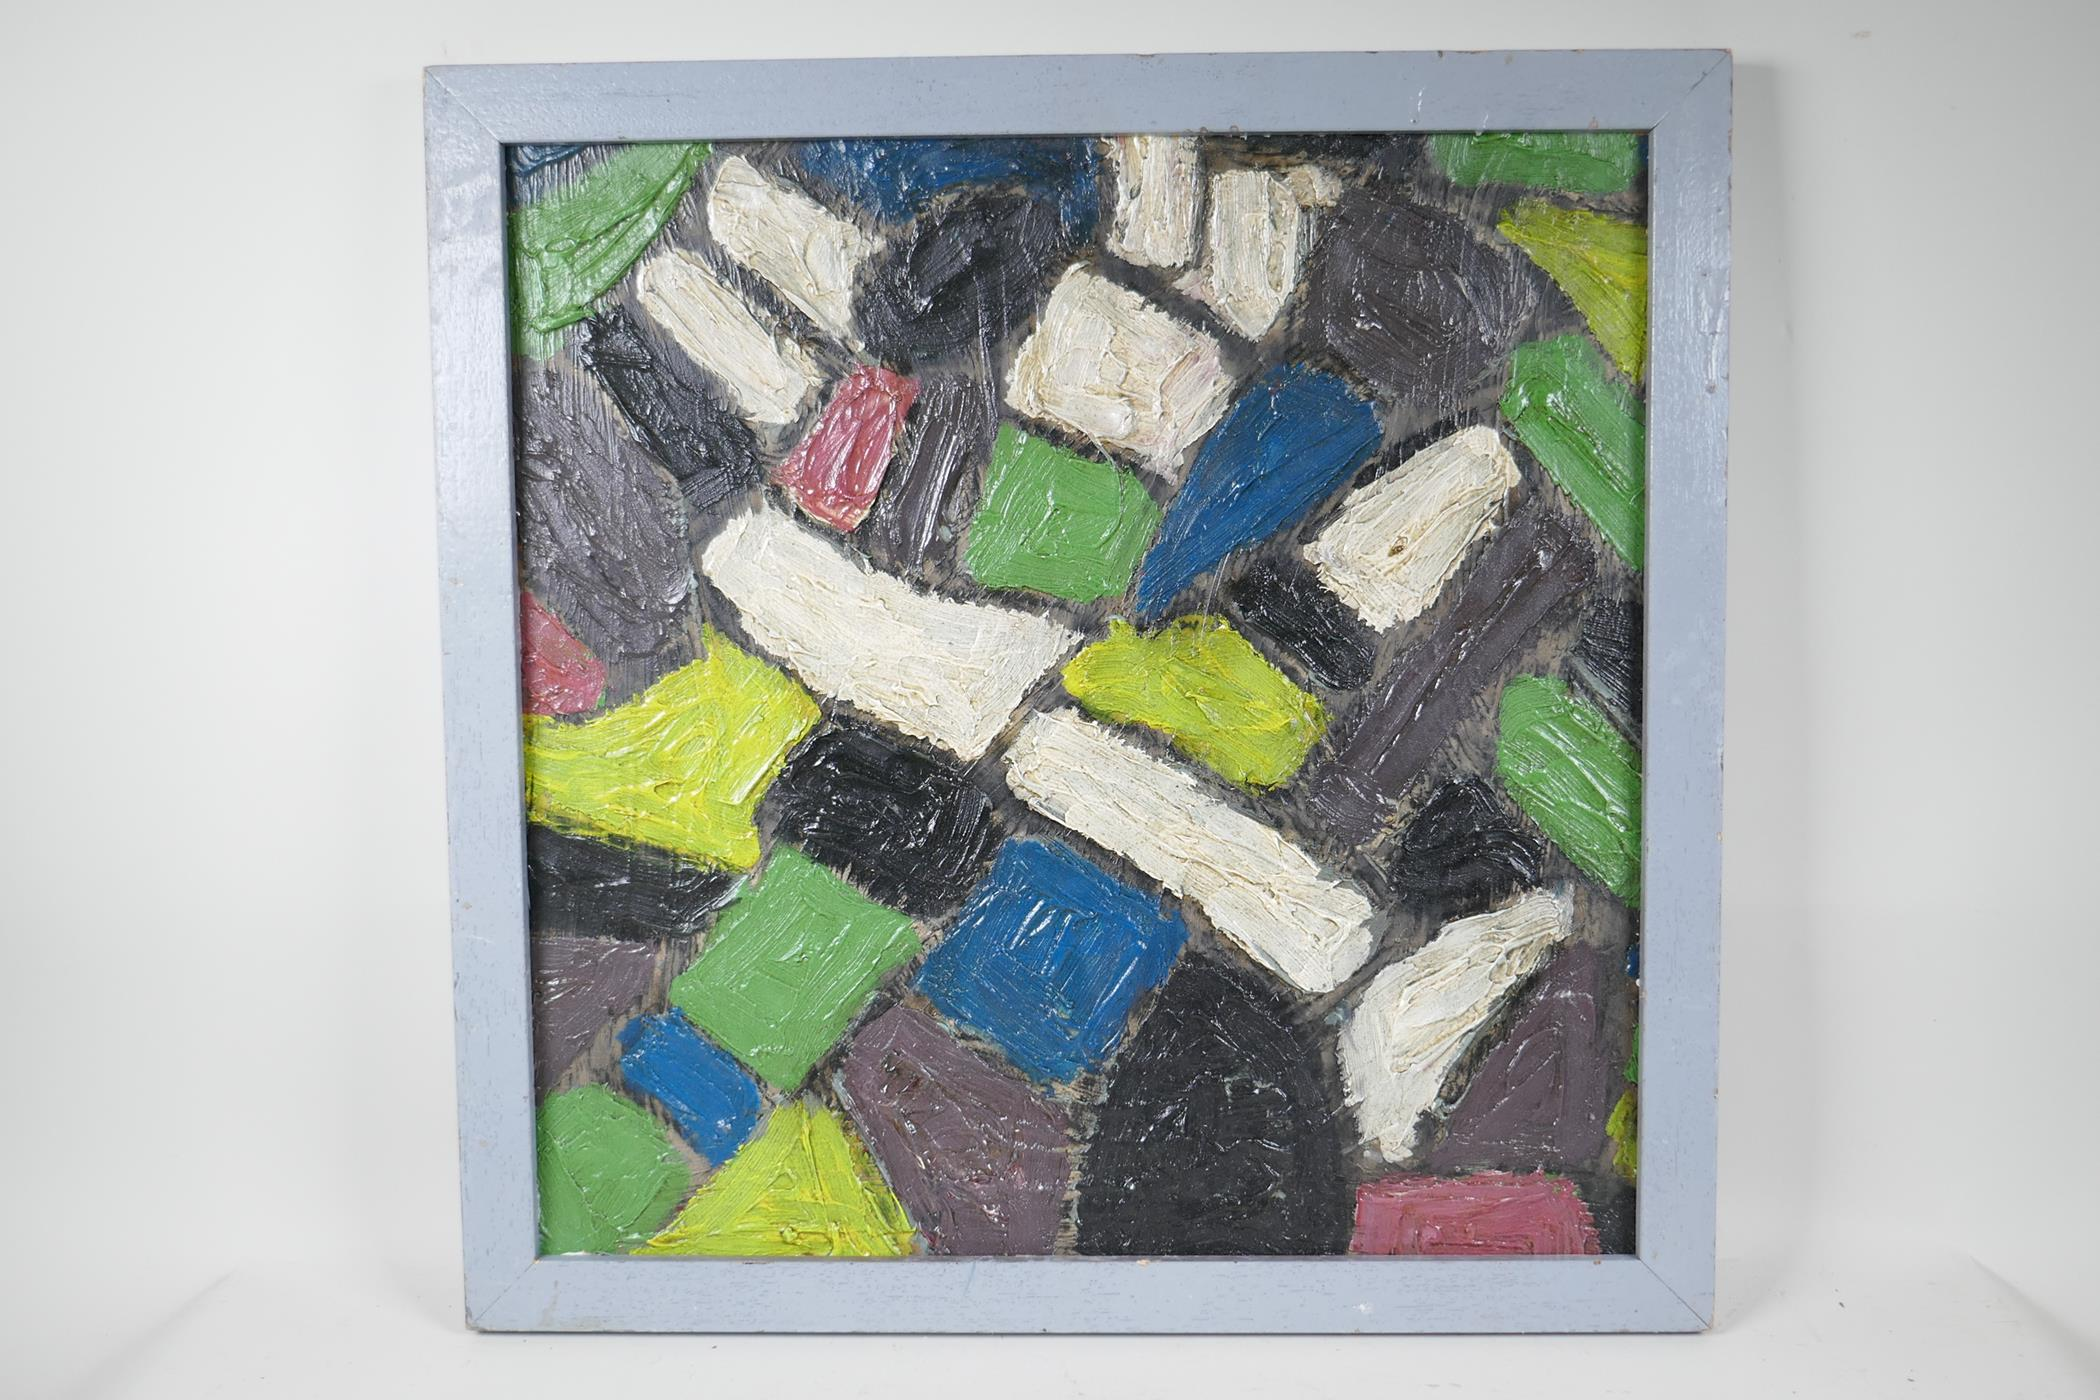 """After Serge Poliakoff, abstract, oil on board, 20"""" x 20"""" - Image 2 of 3"""